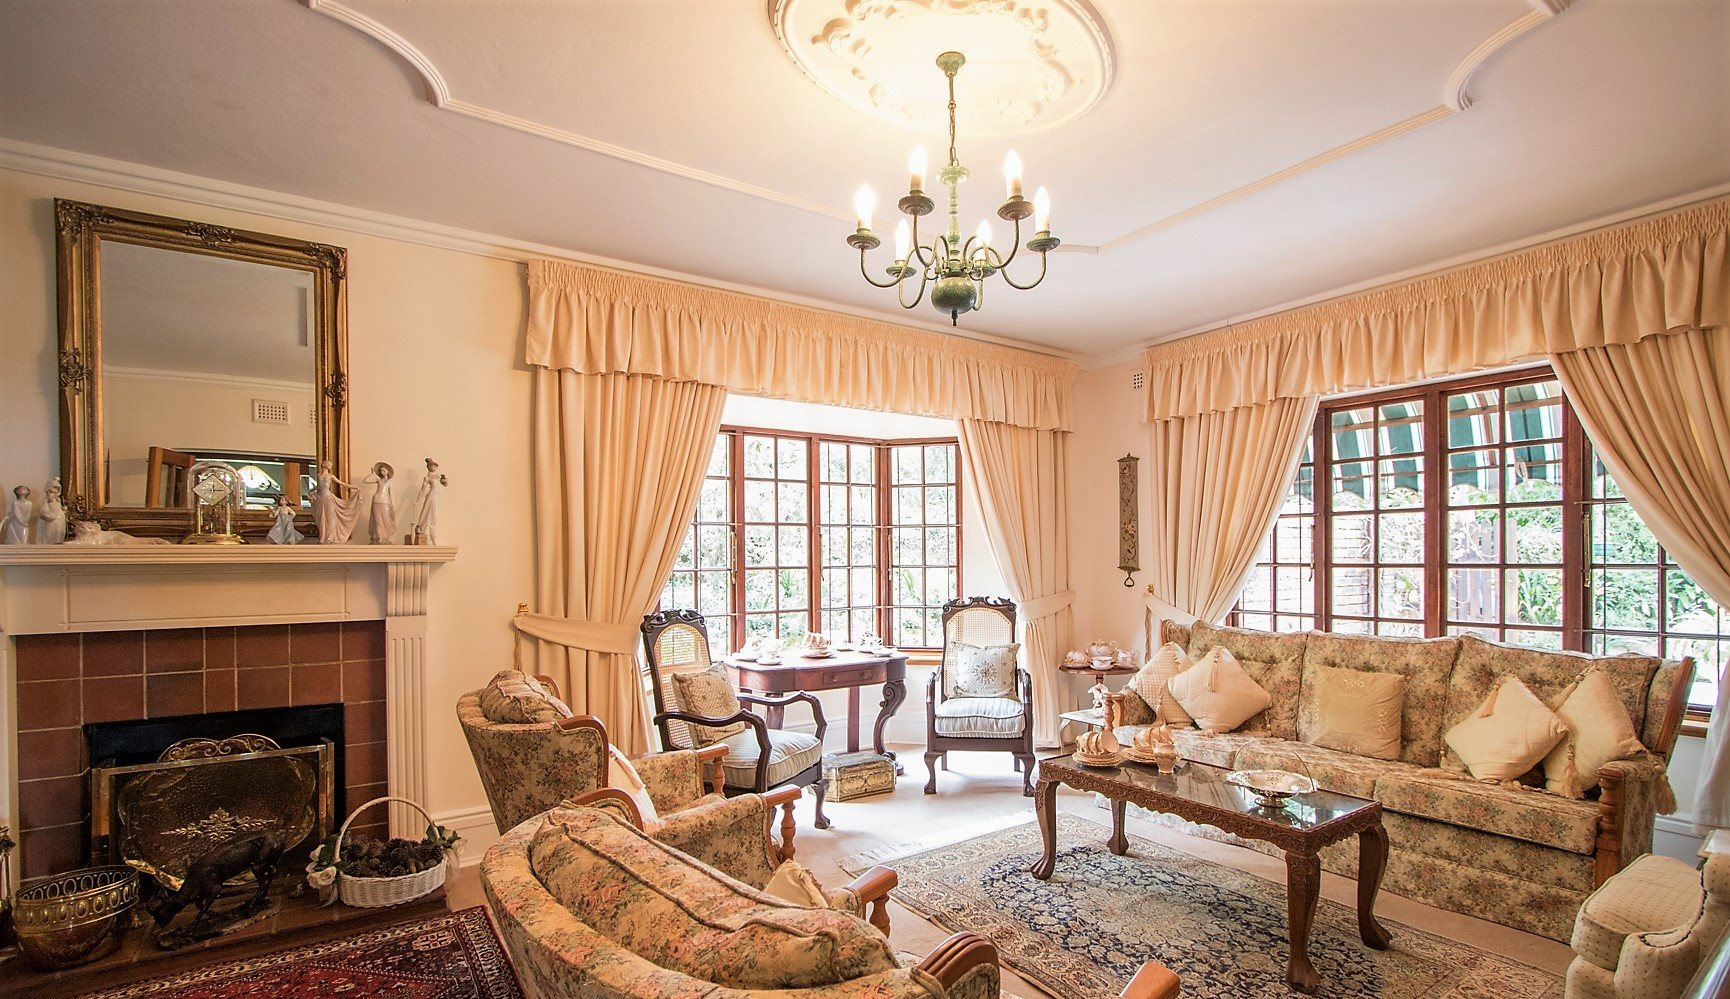 Summerveld property for sale. Ref No: 13247765. Picture no 13